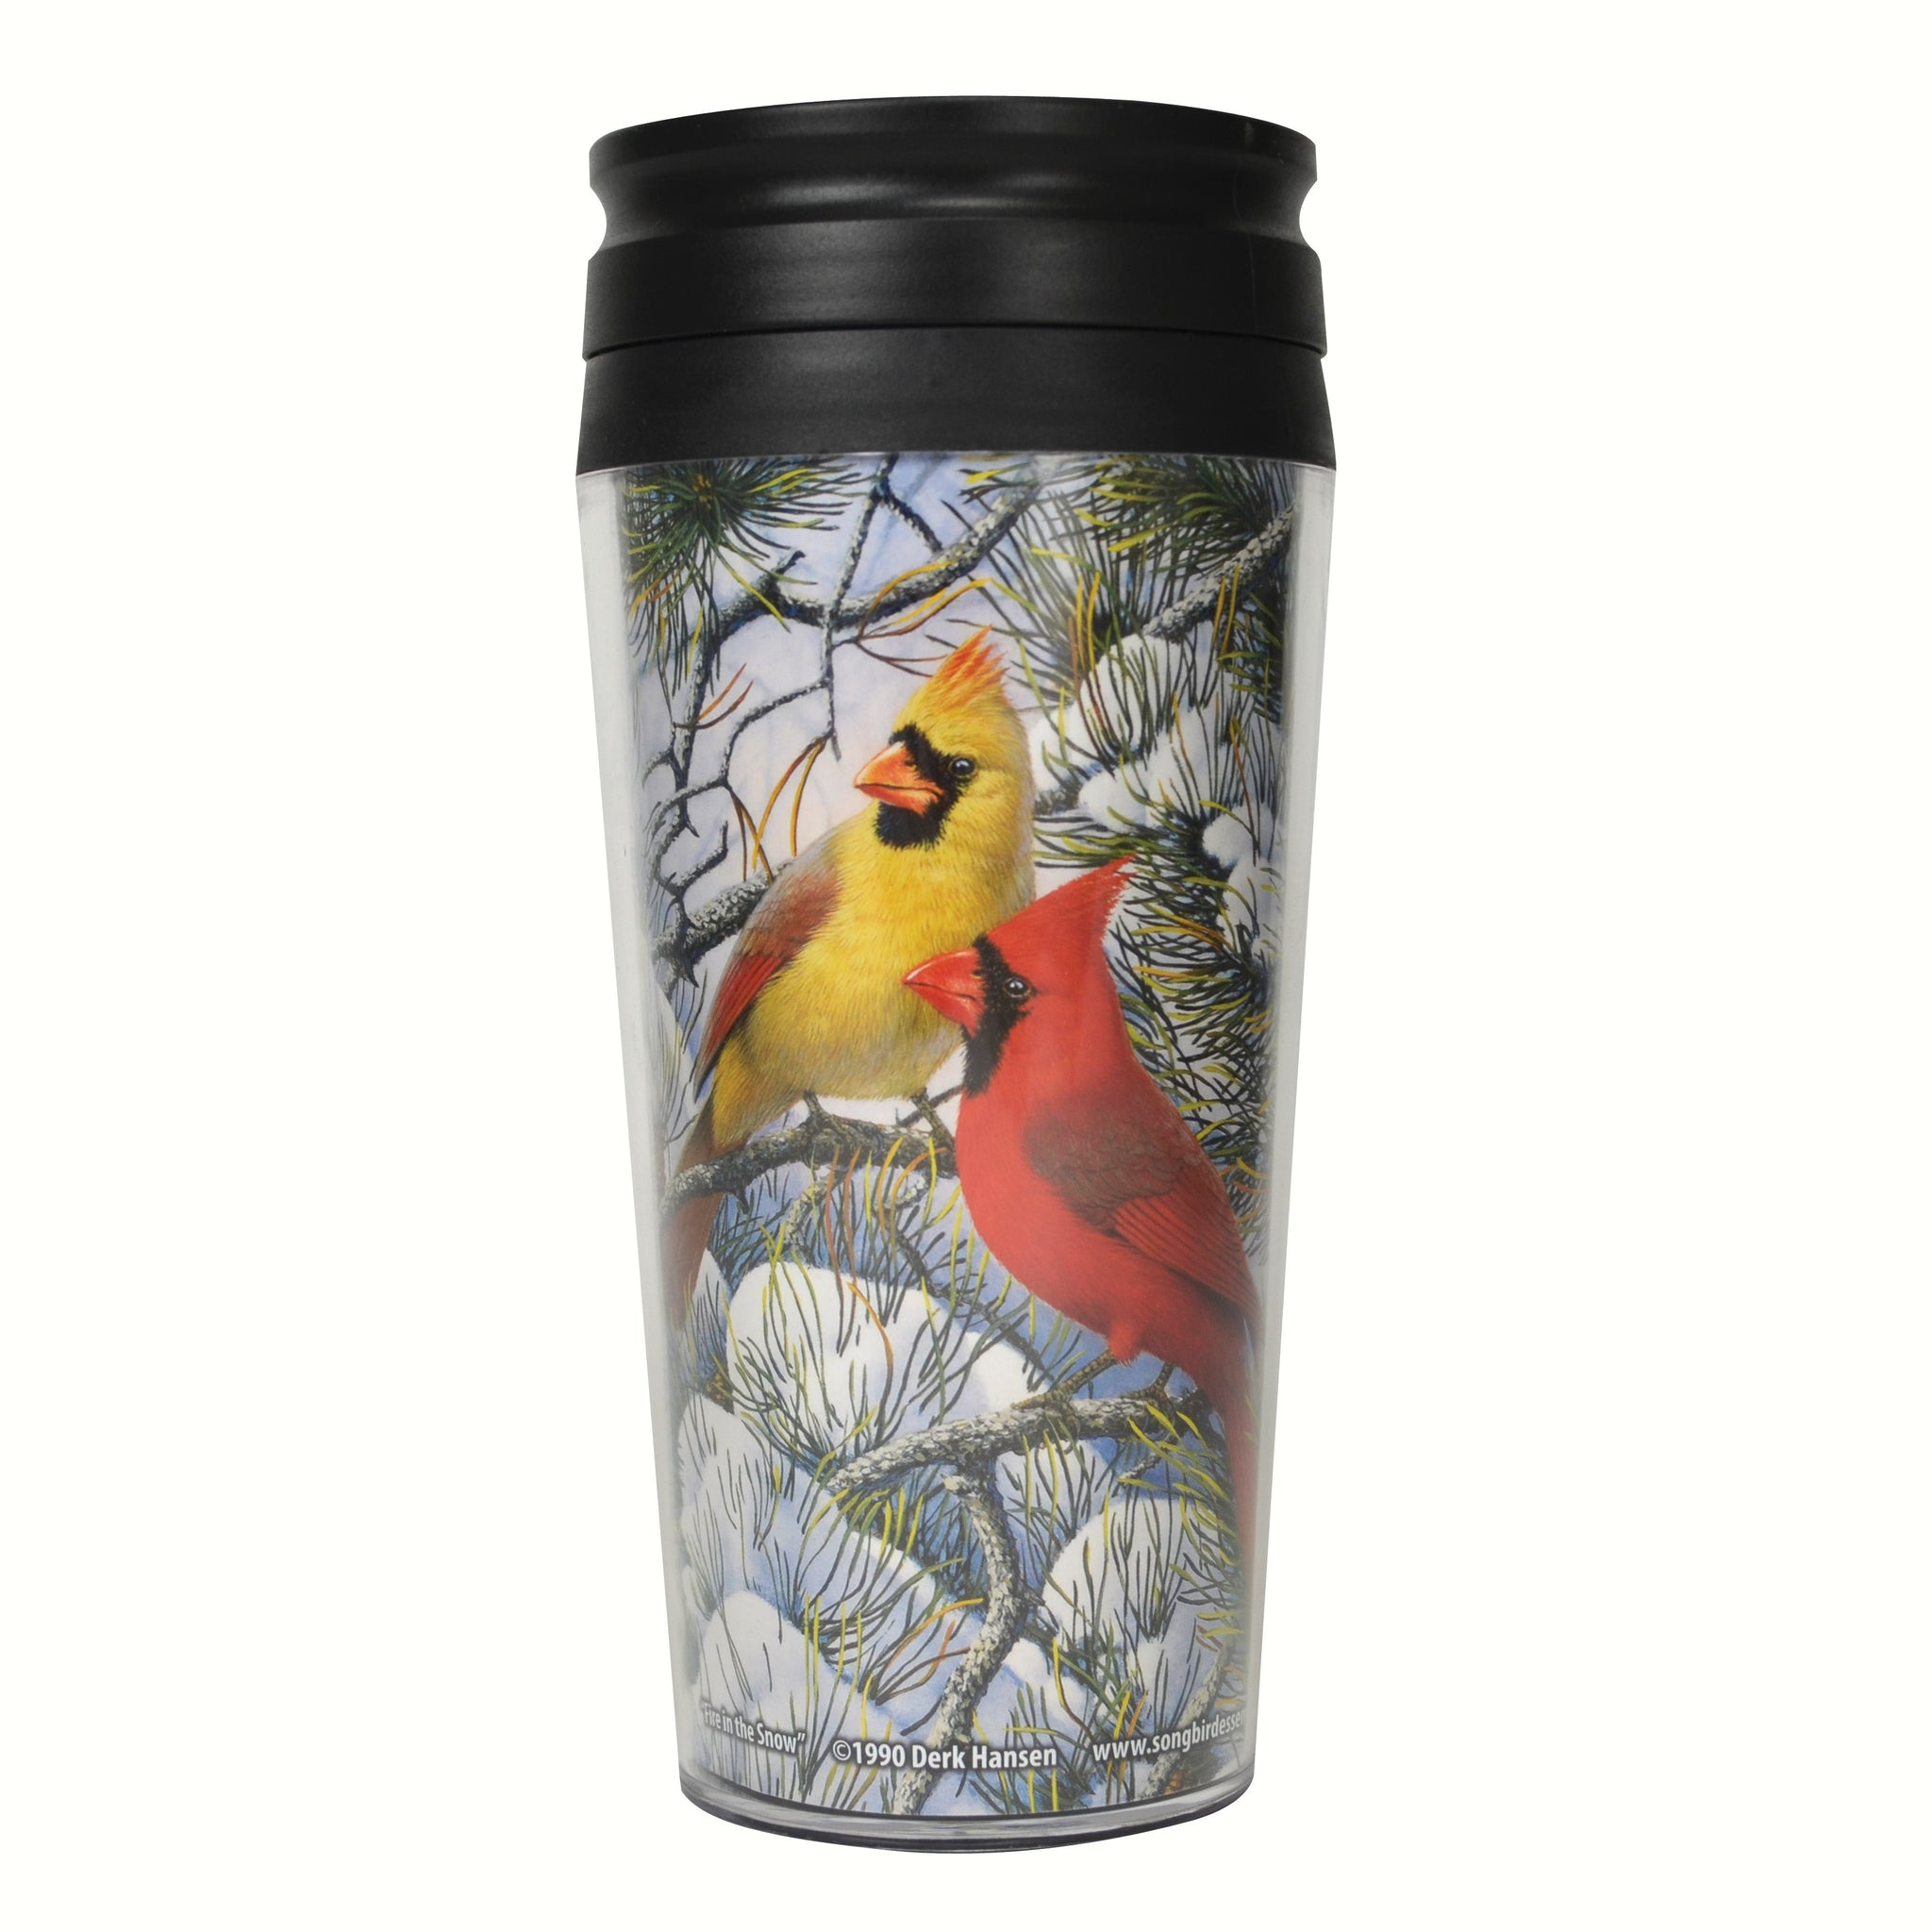 Songbird Essentials 16 Oz Fire In The Snow Thermal Mug